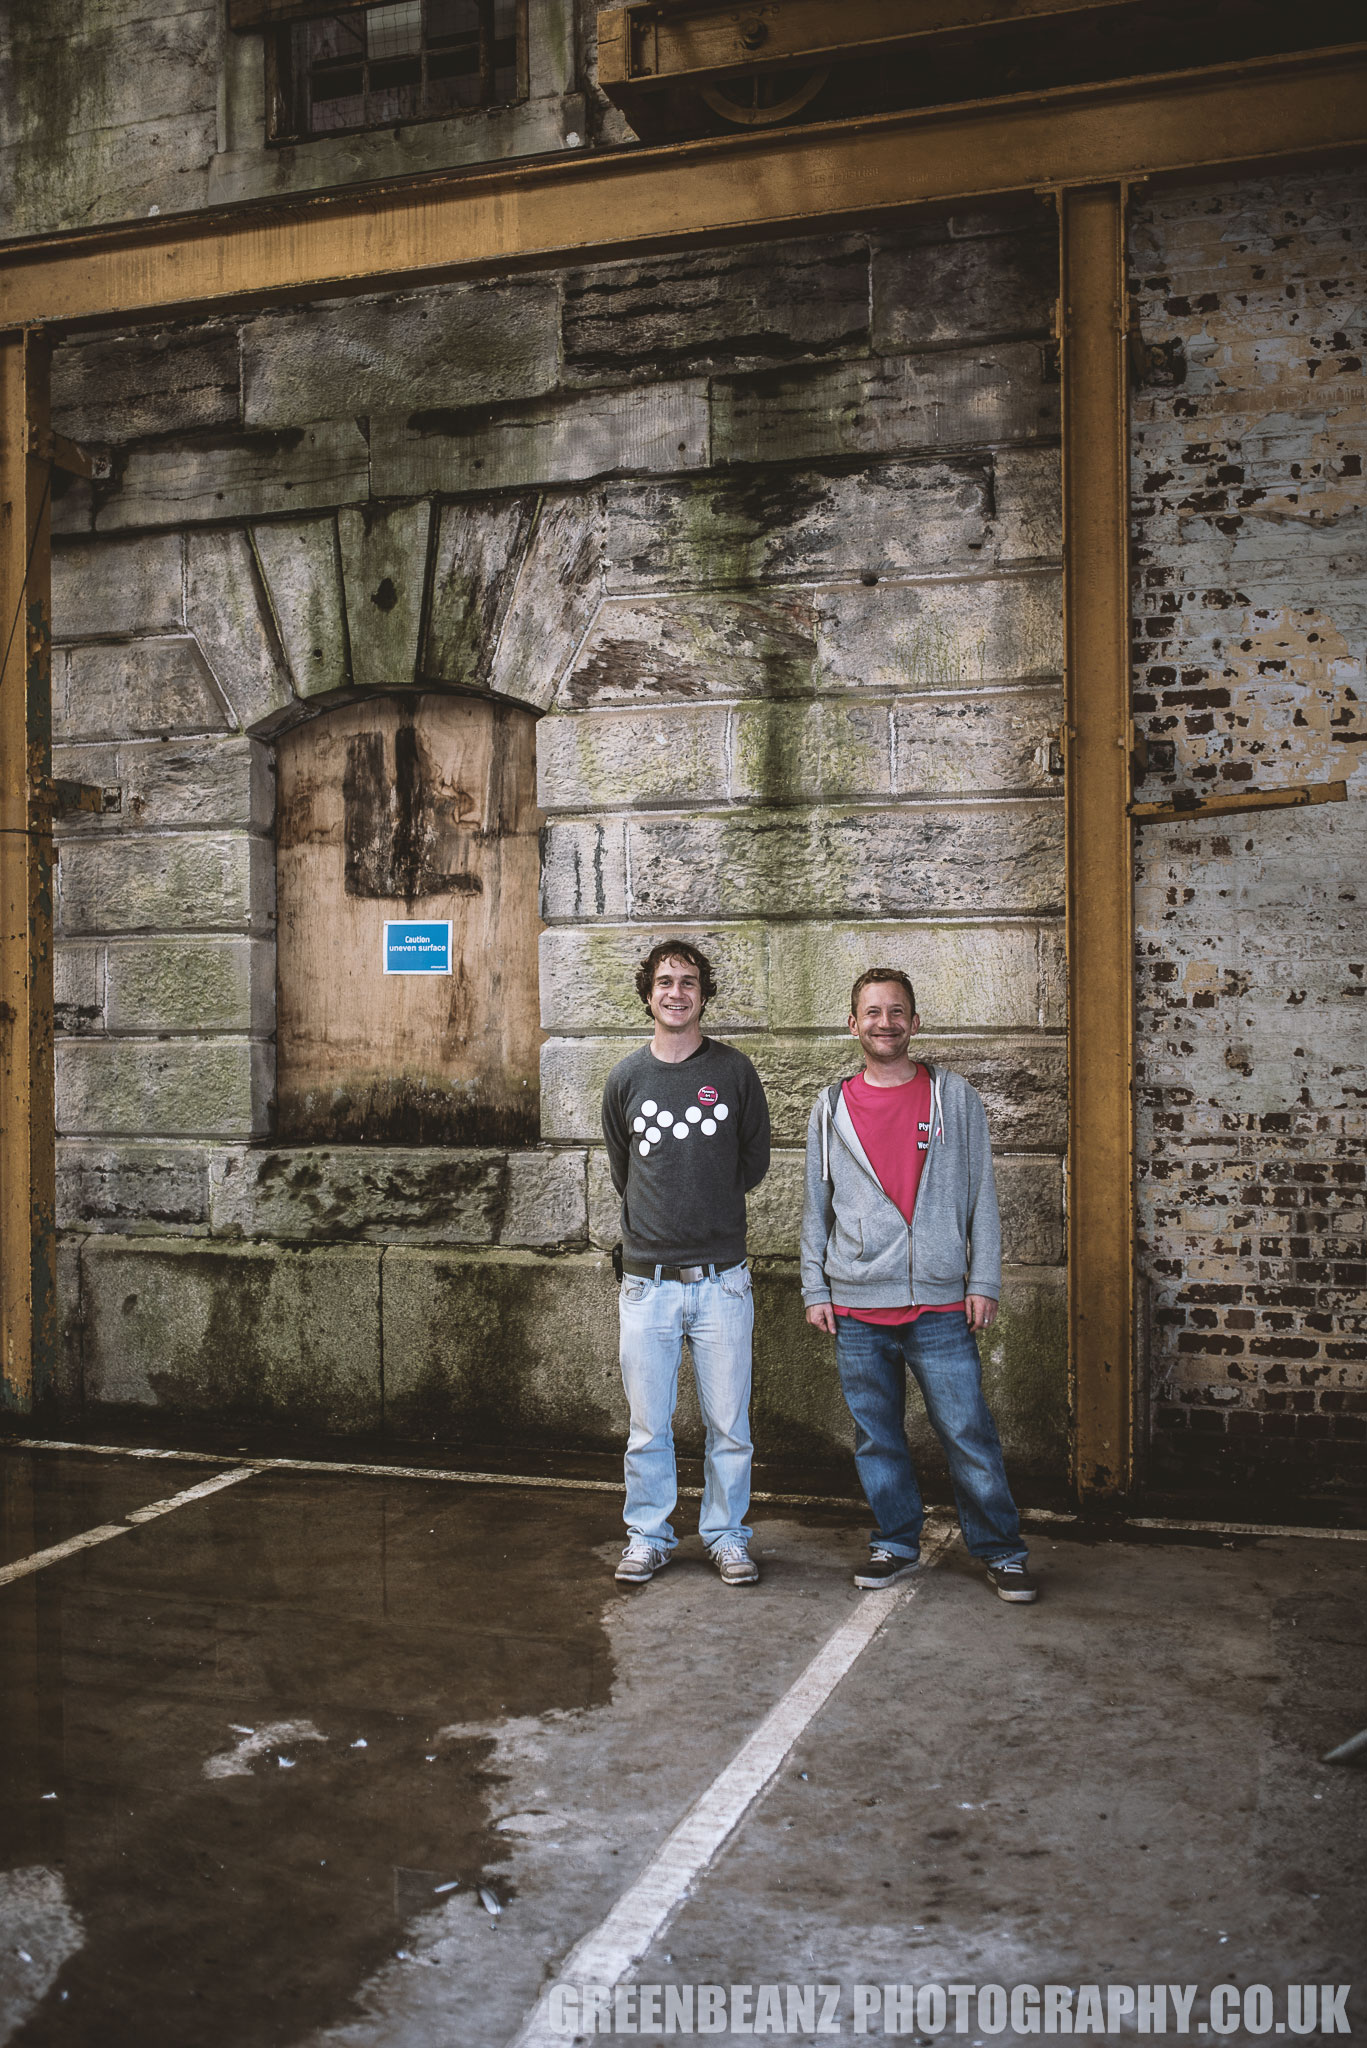 The Artists Christian Gale and Sam Ackroyd at The Royal William Yard